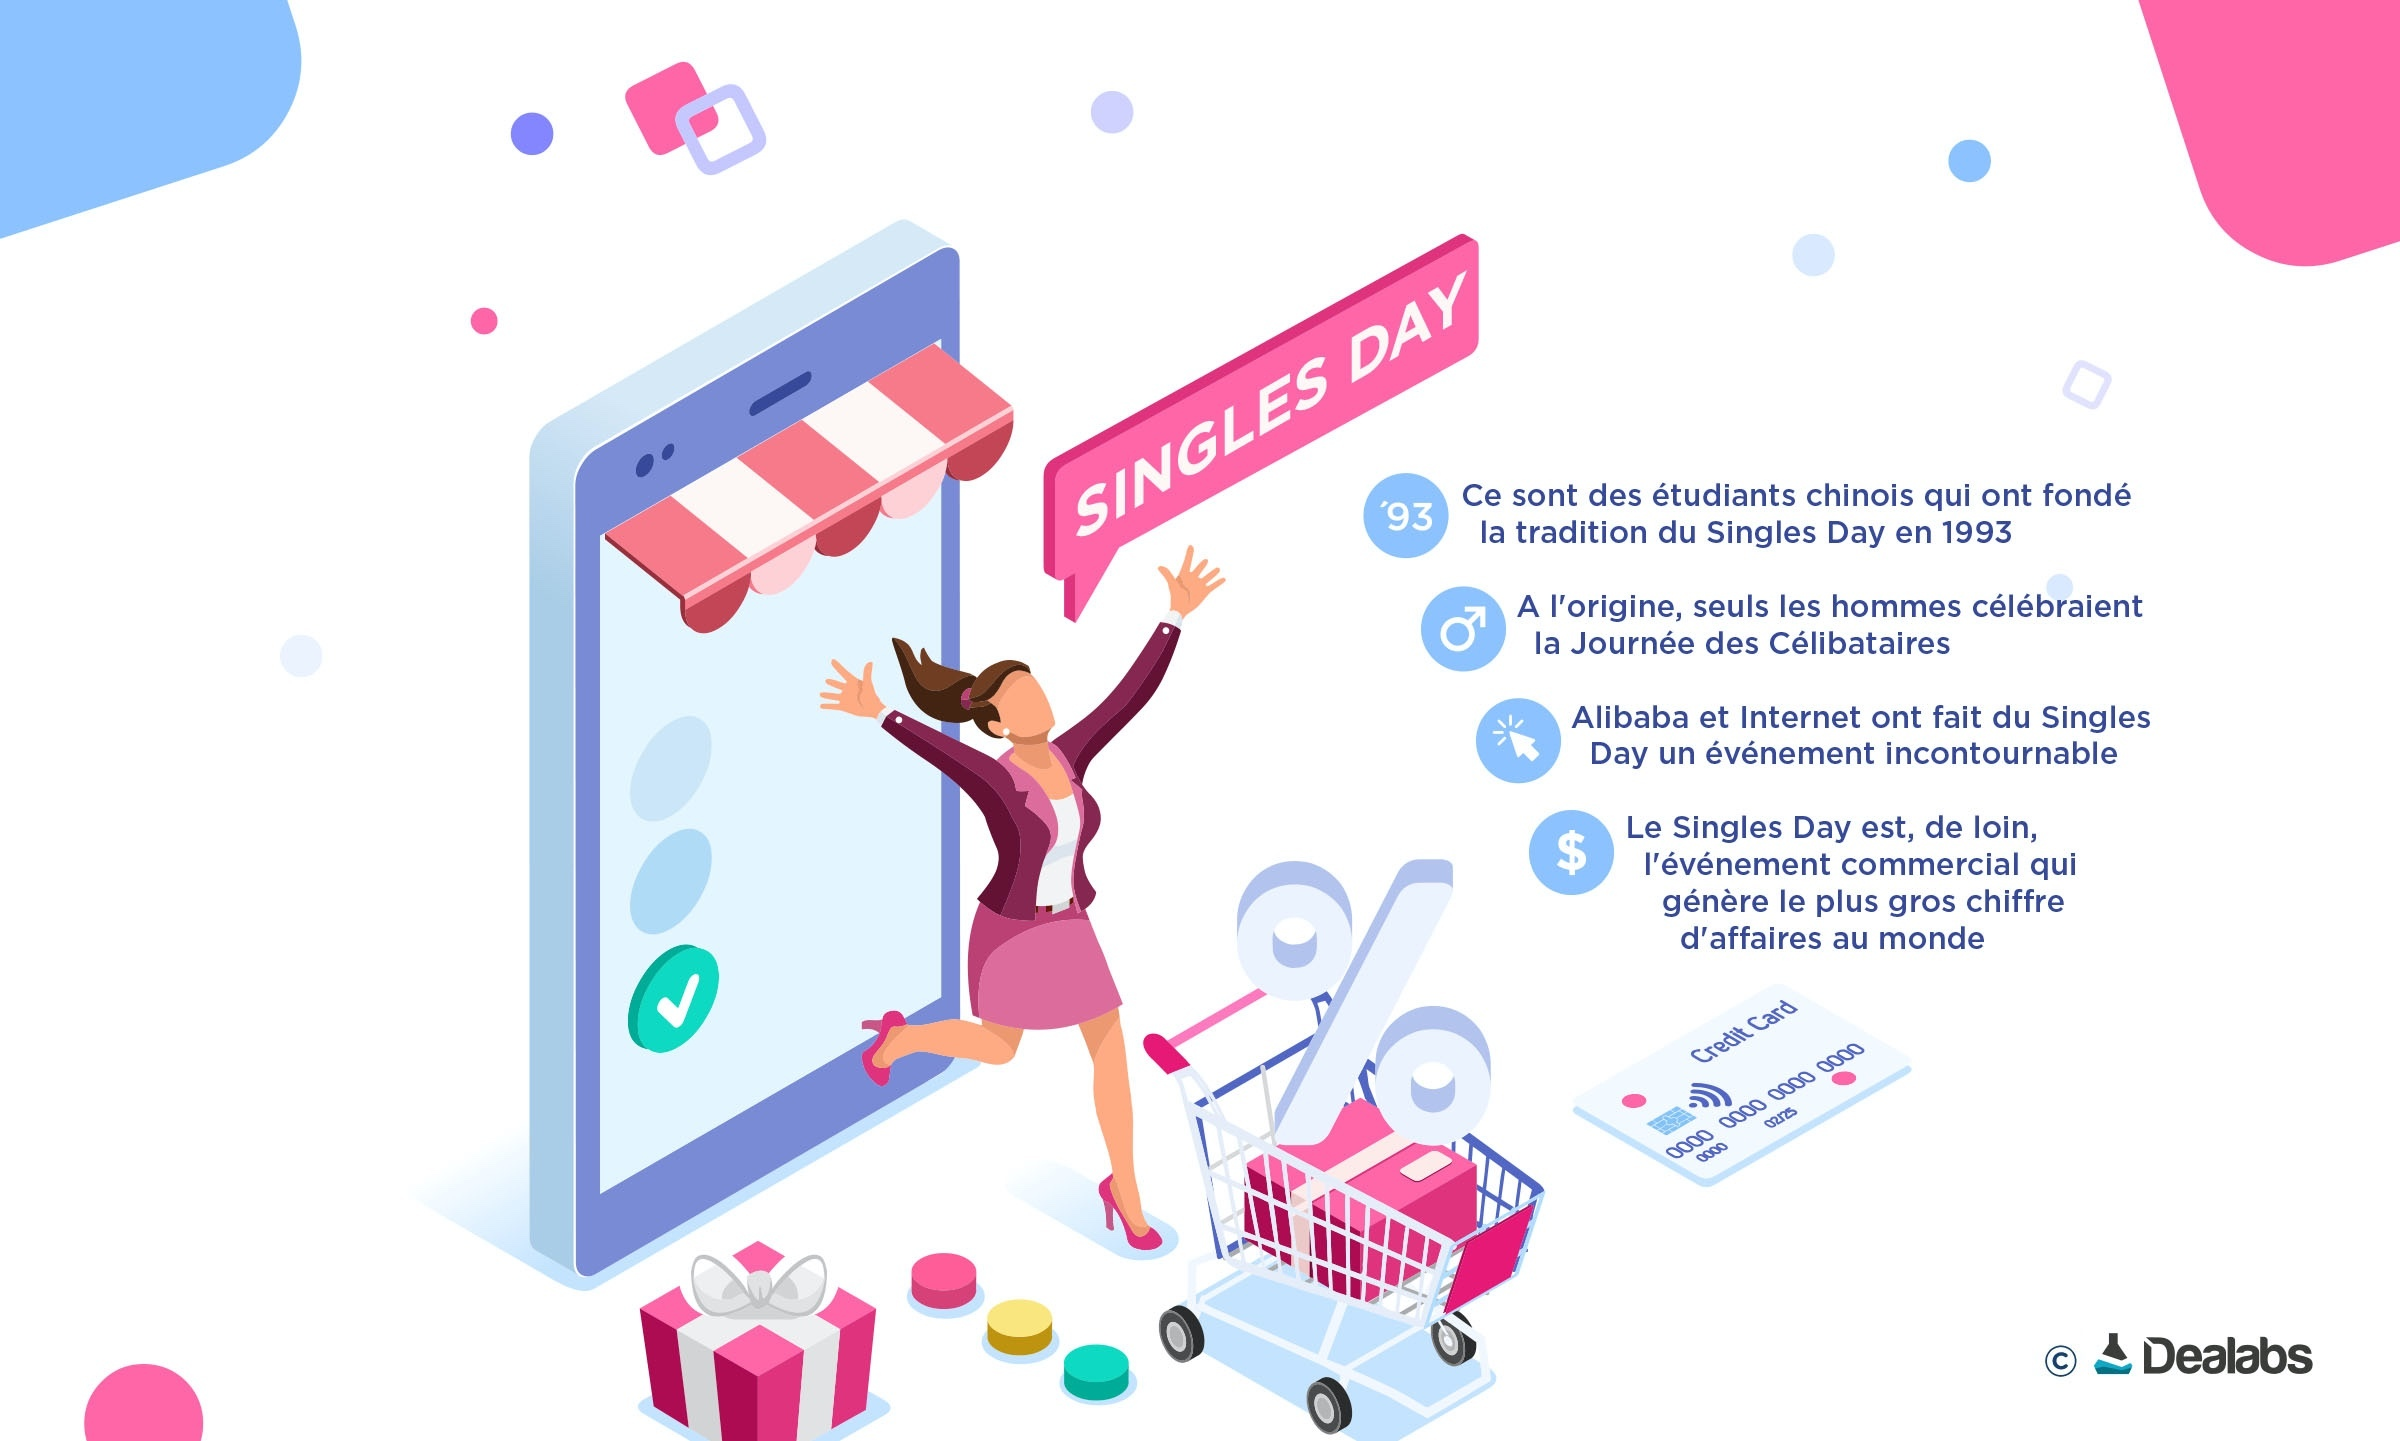 369122 dealabs singles day infographic%20%281%29 c0bfd6 original 1603898536